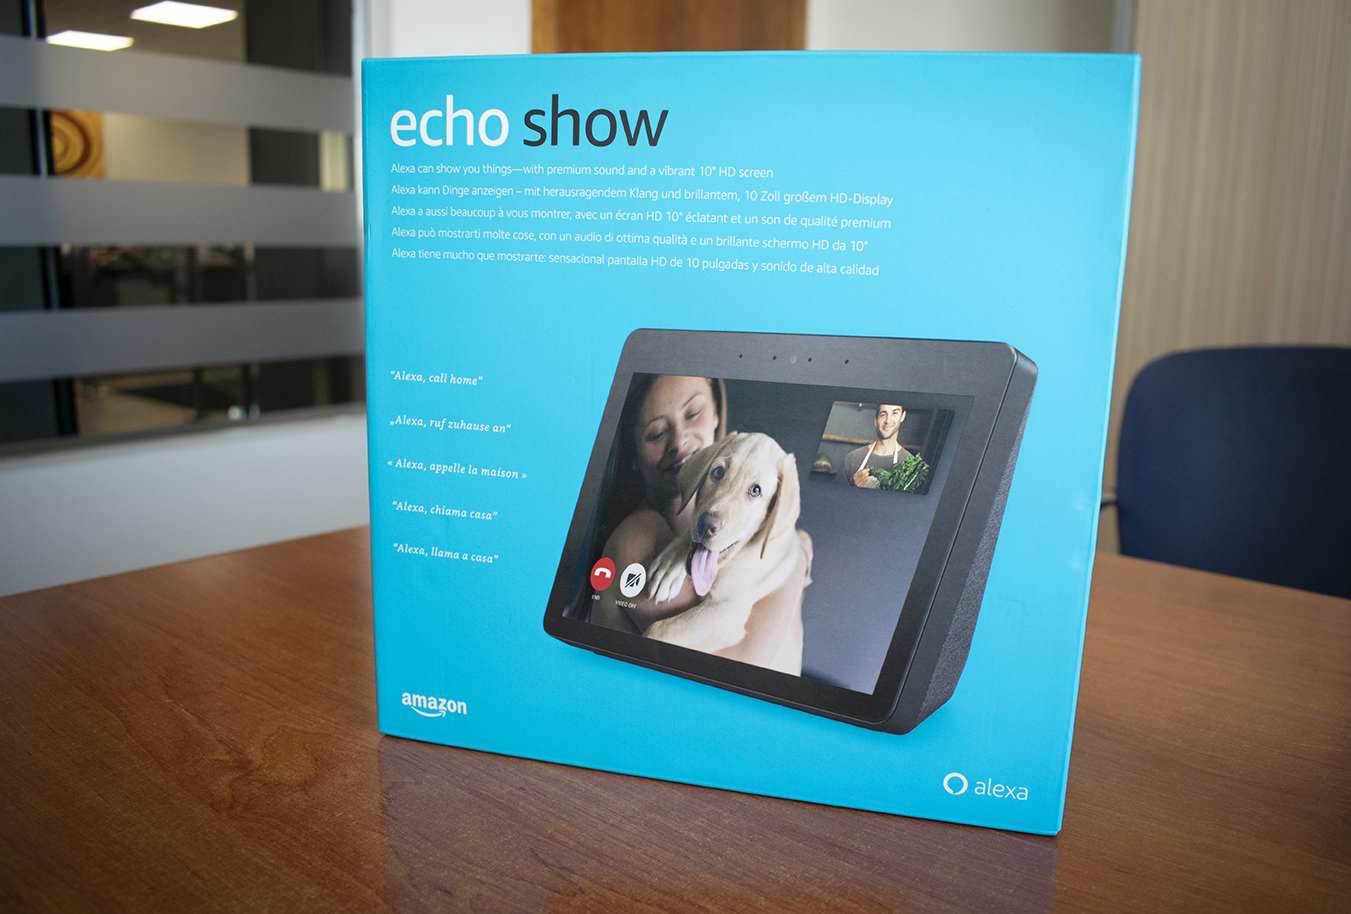 Caja del Amazon Echo Show de pie